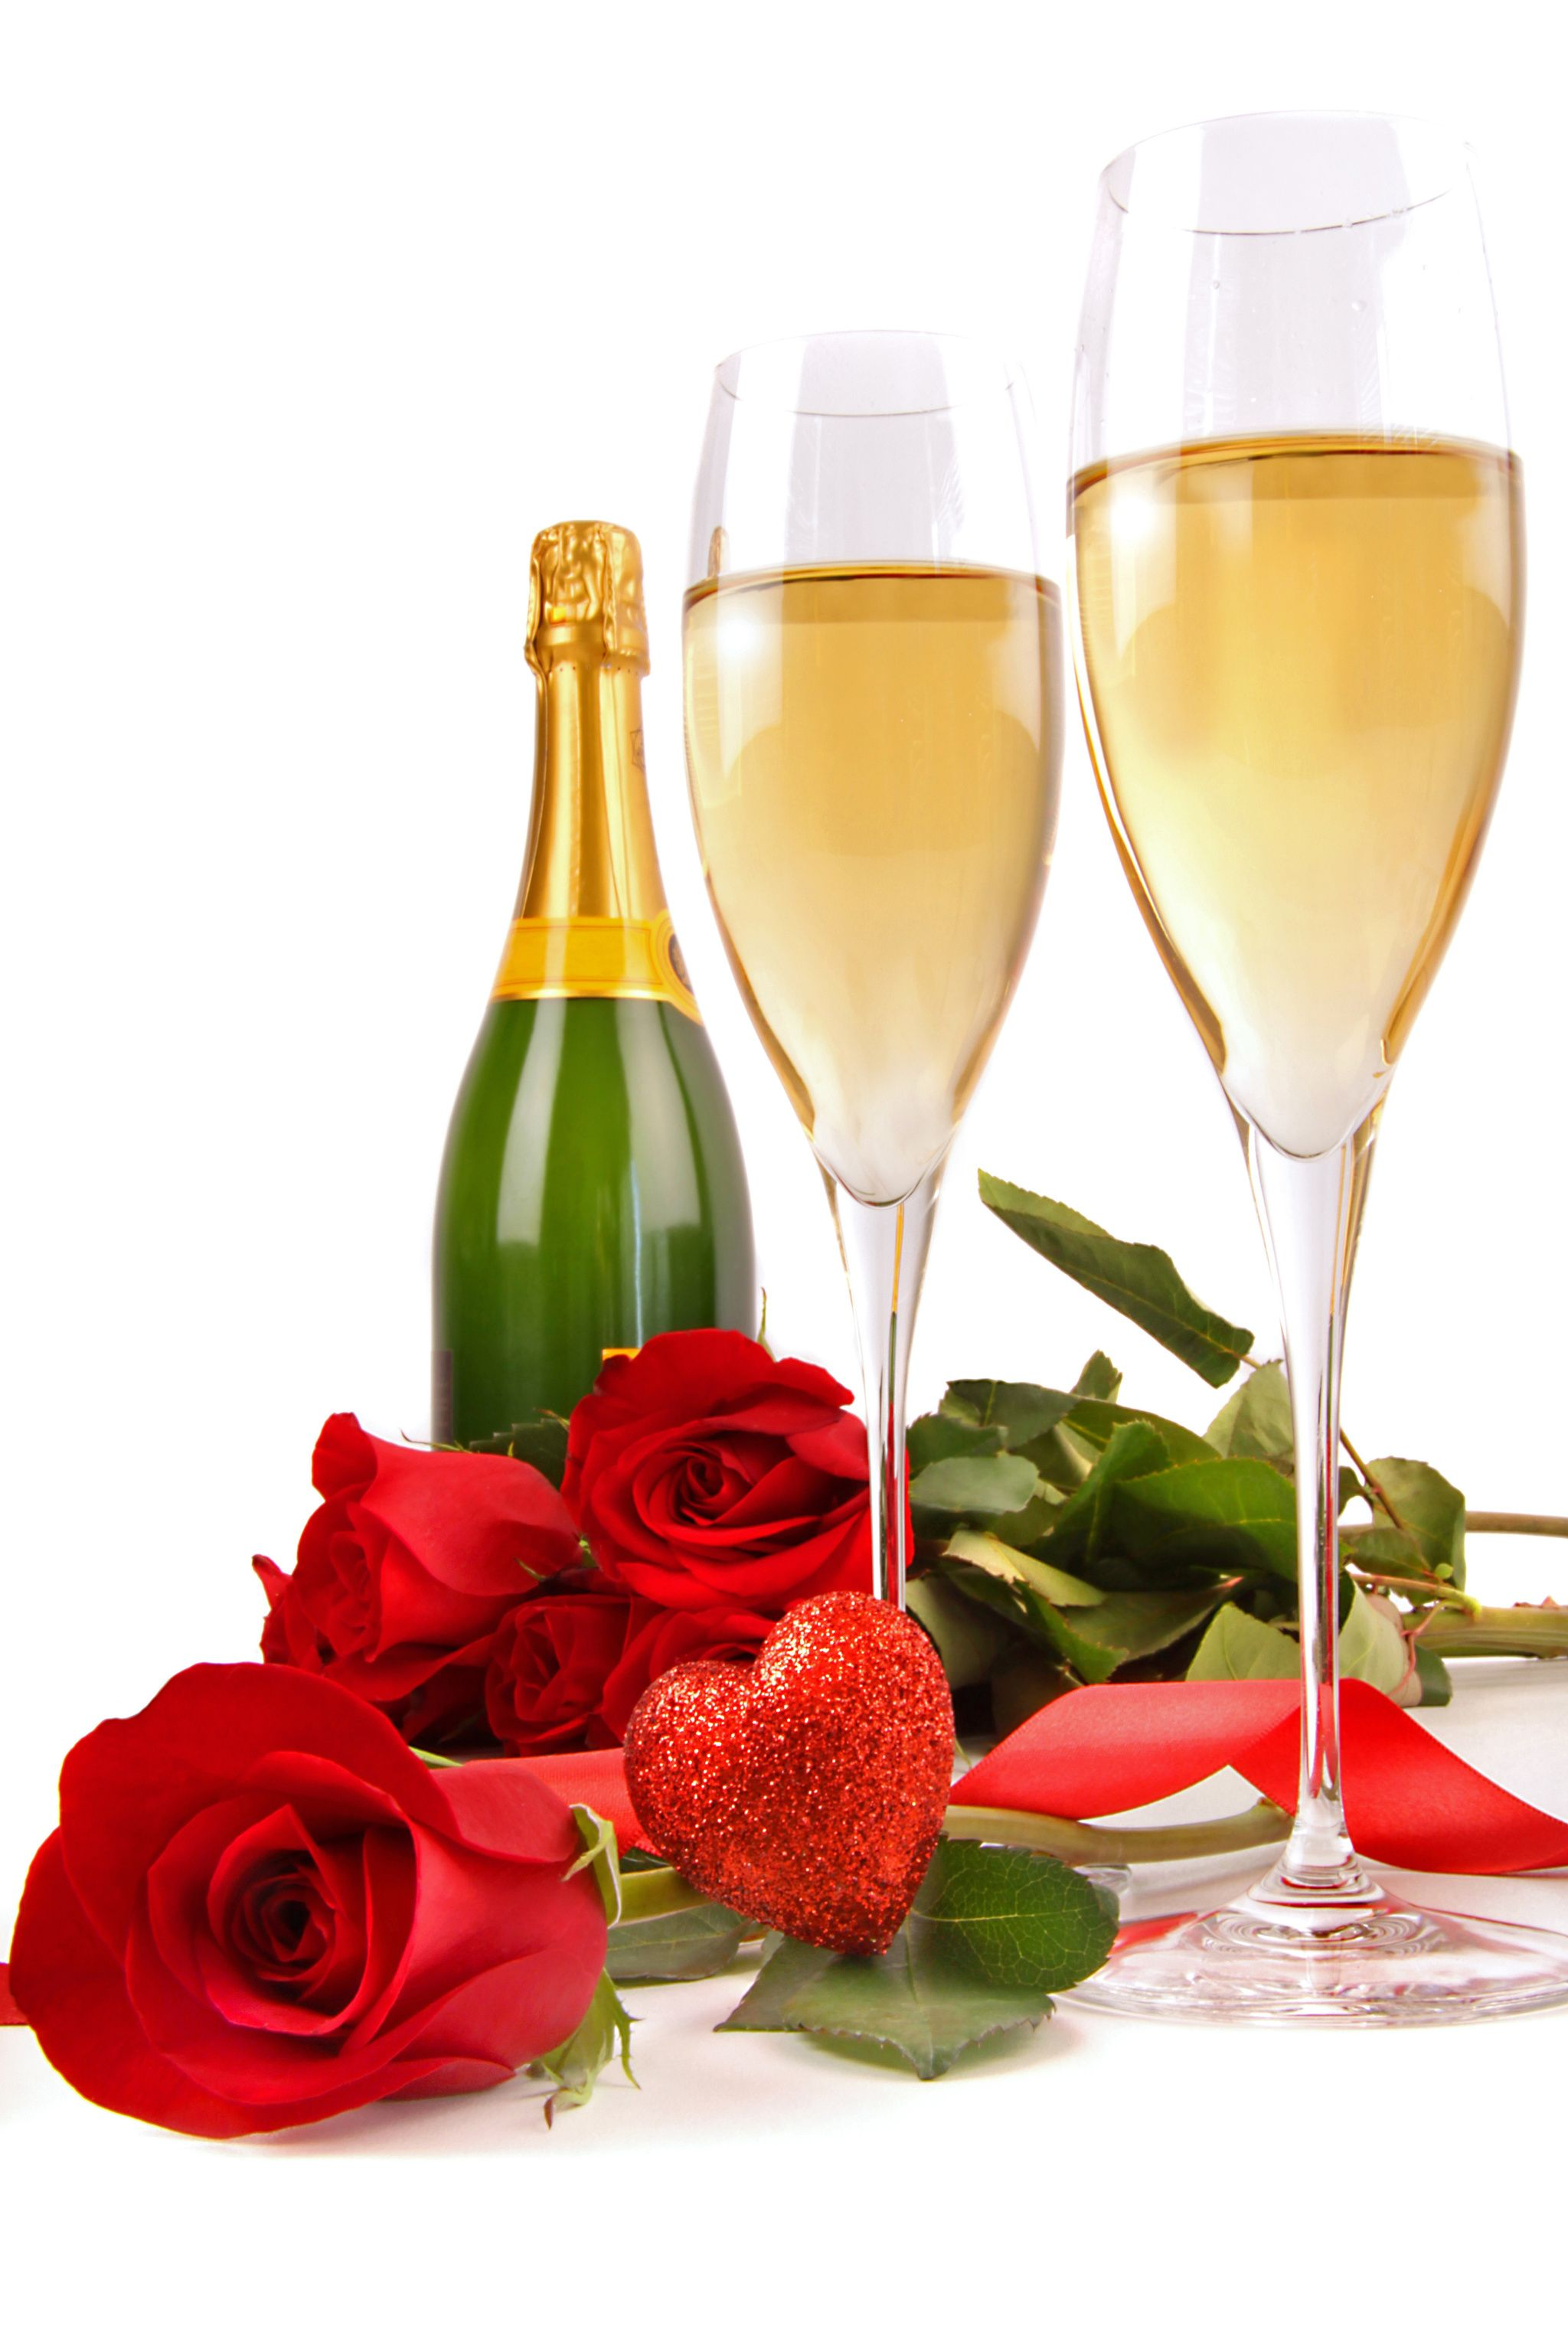 Psychic Bring Back Lost Lover Spells In Merthyr Tydfil Chat Call Whatsapp 27843769238 Champagne Create Wine Wine And Beer